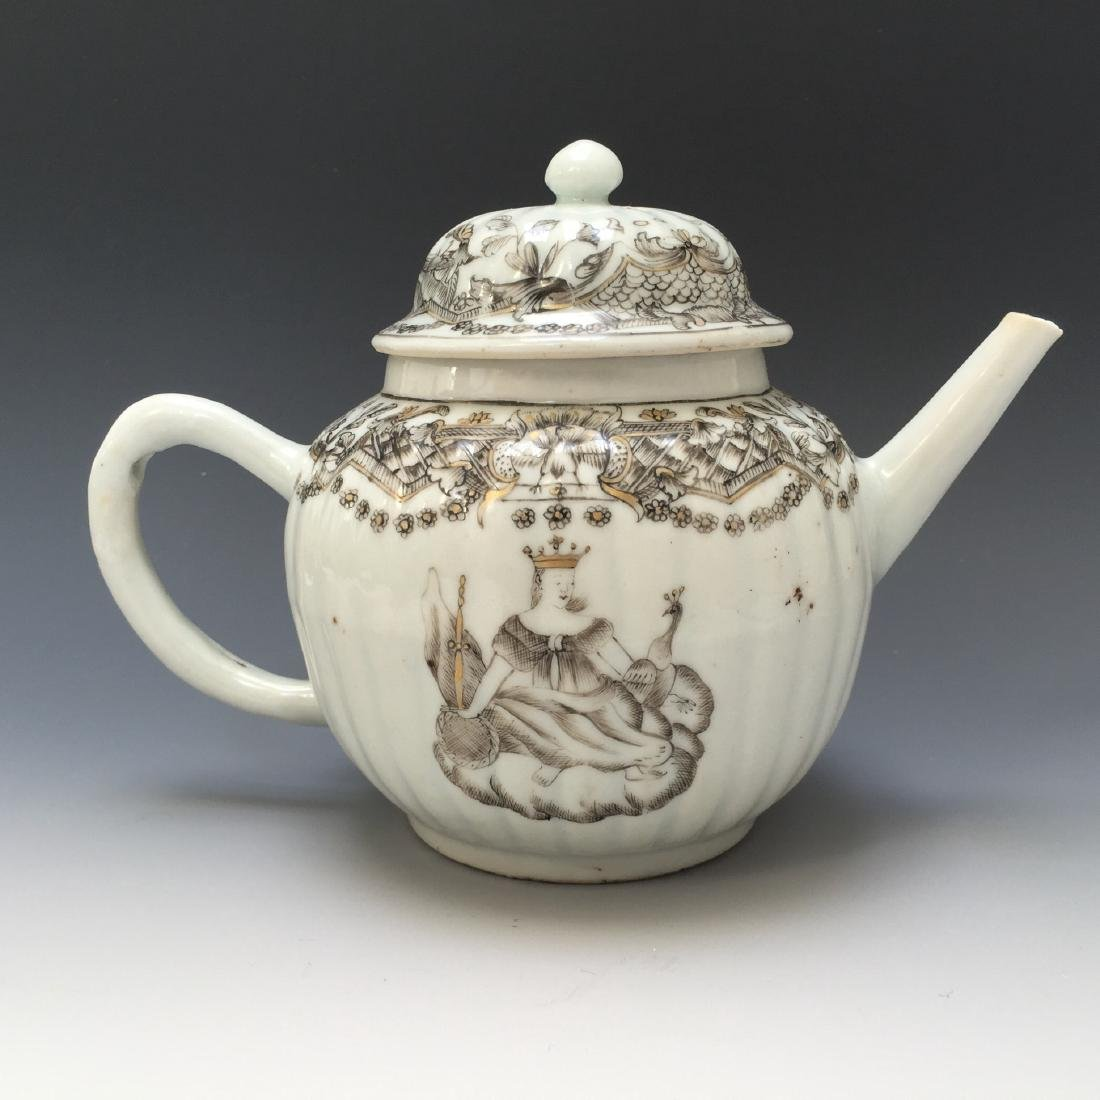 CHINESE FINE ARMORIAL TEAPOT, 18TH C